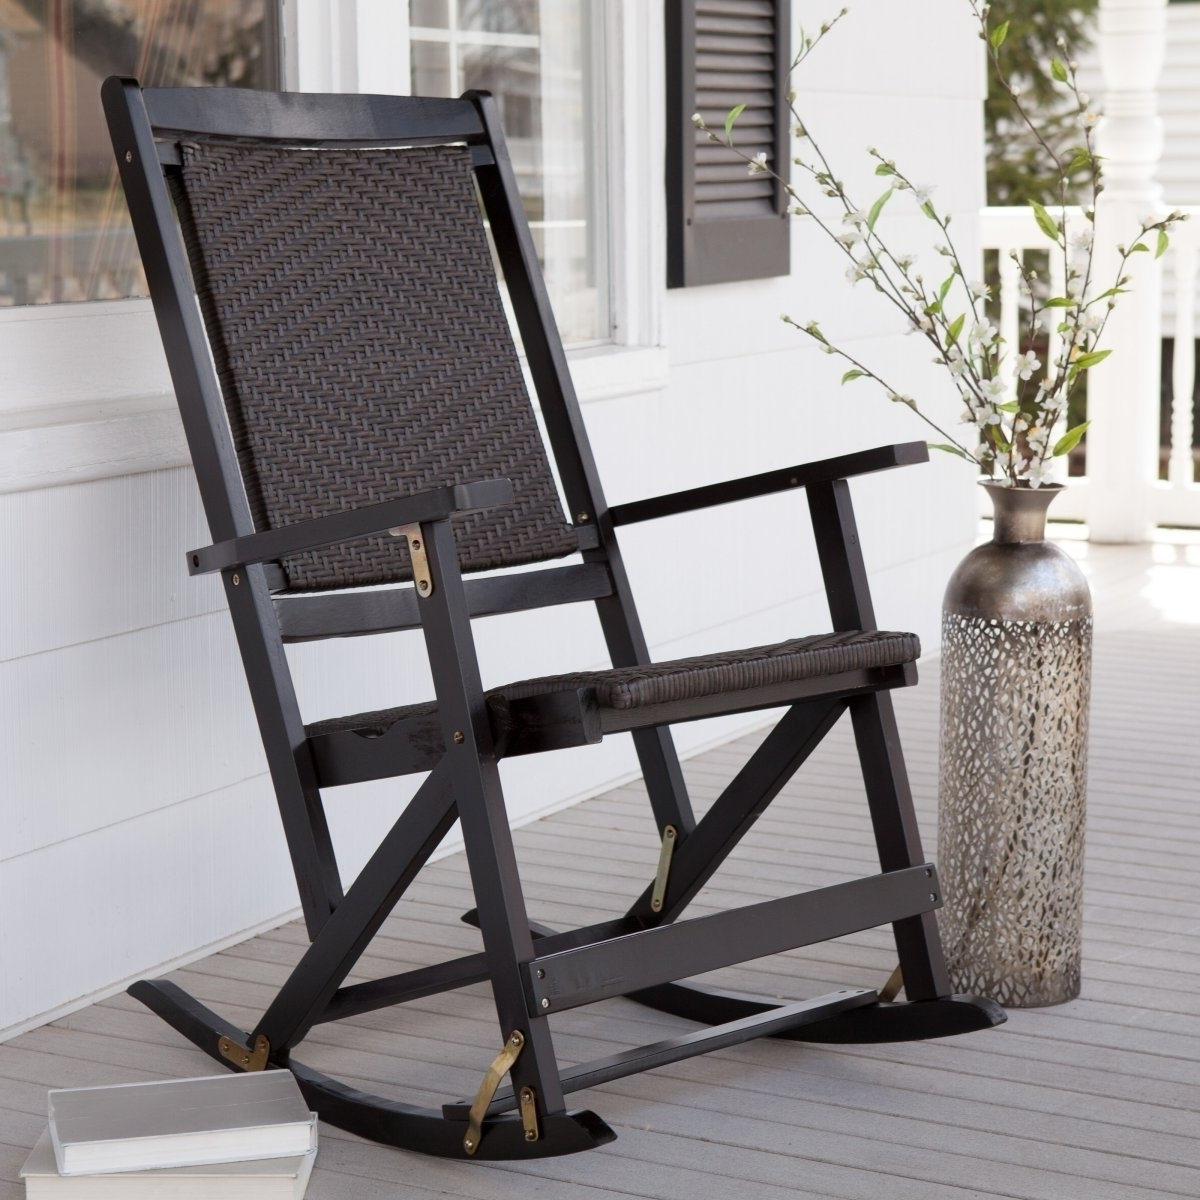 Fashionable Garden & Patio Furniture : Outdoor Outside Wooden Rocking Chairs With Patio Wooden Rocking Chairs (View 19 of 20)